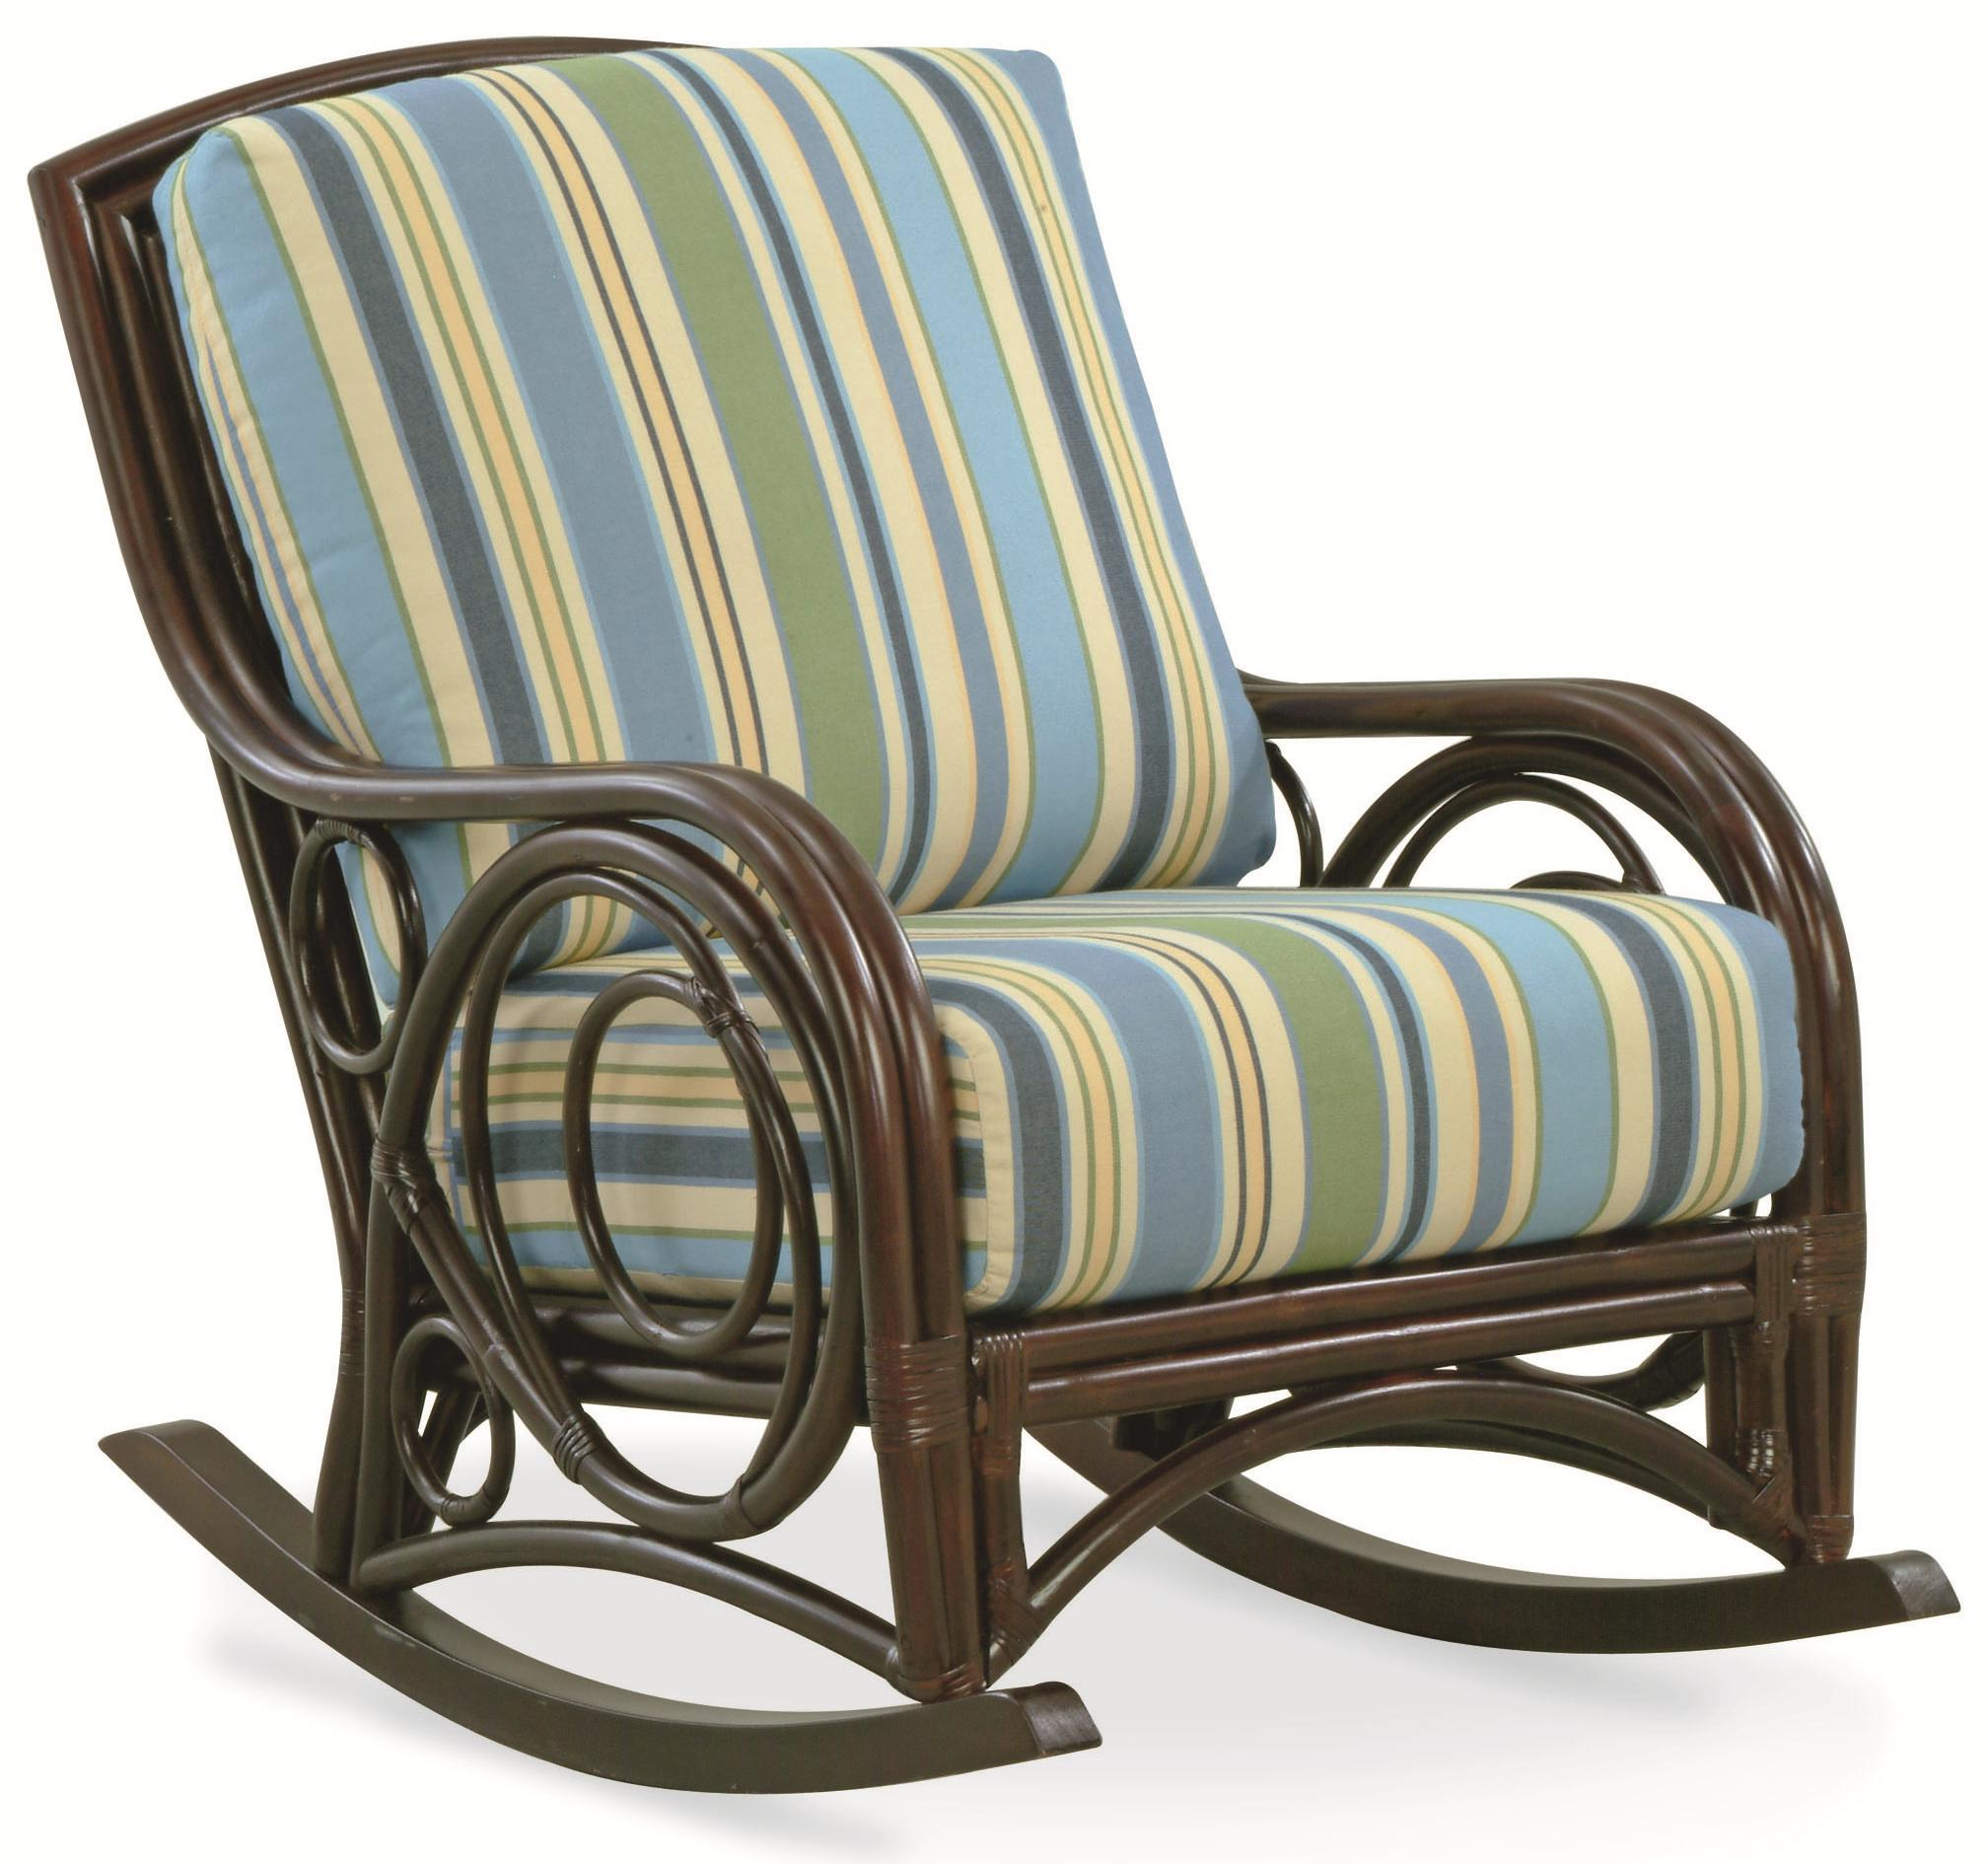 Braxton Culler Cotton House  Rattan Wicker Rocking Chair With Upholstered Seat And Back Ahfa Upholstered Rocker Dealer Locator